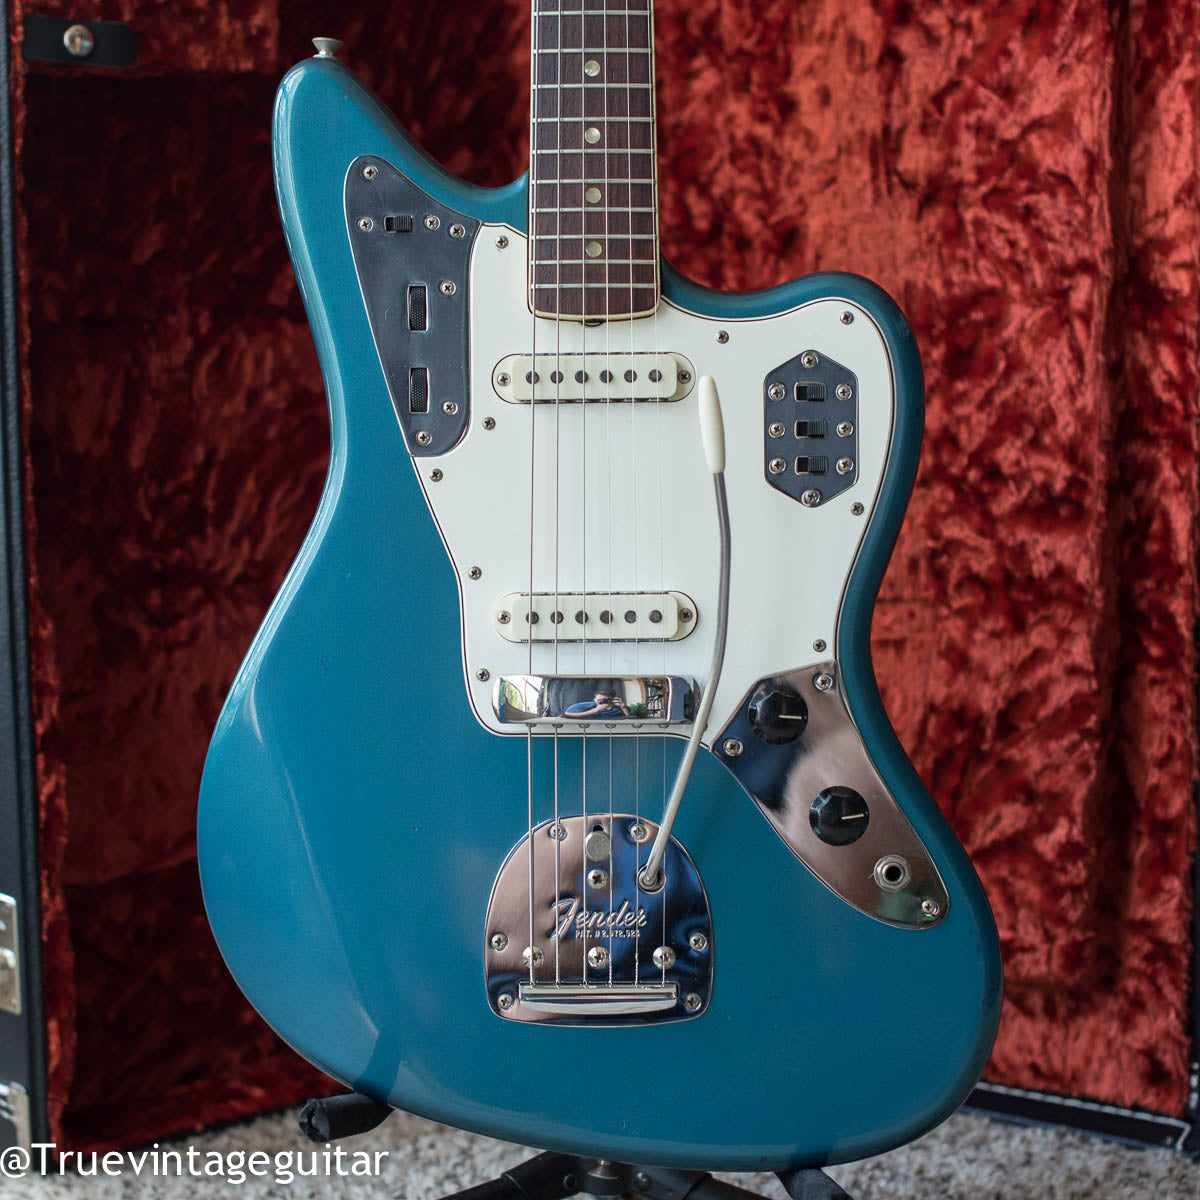 Vintage 1966 Fender Jaguar electric guitar Lake Placid Blue Metallic